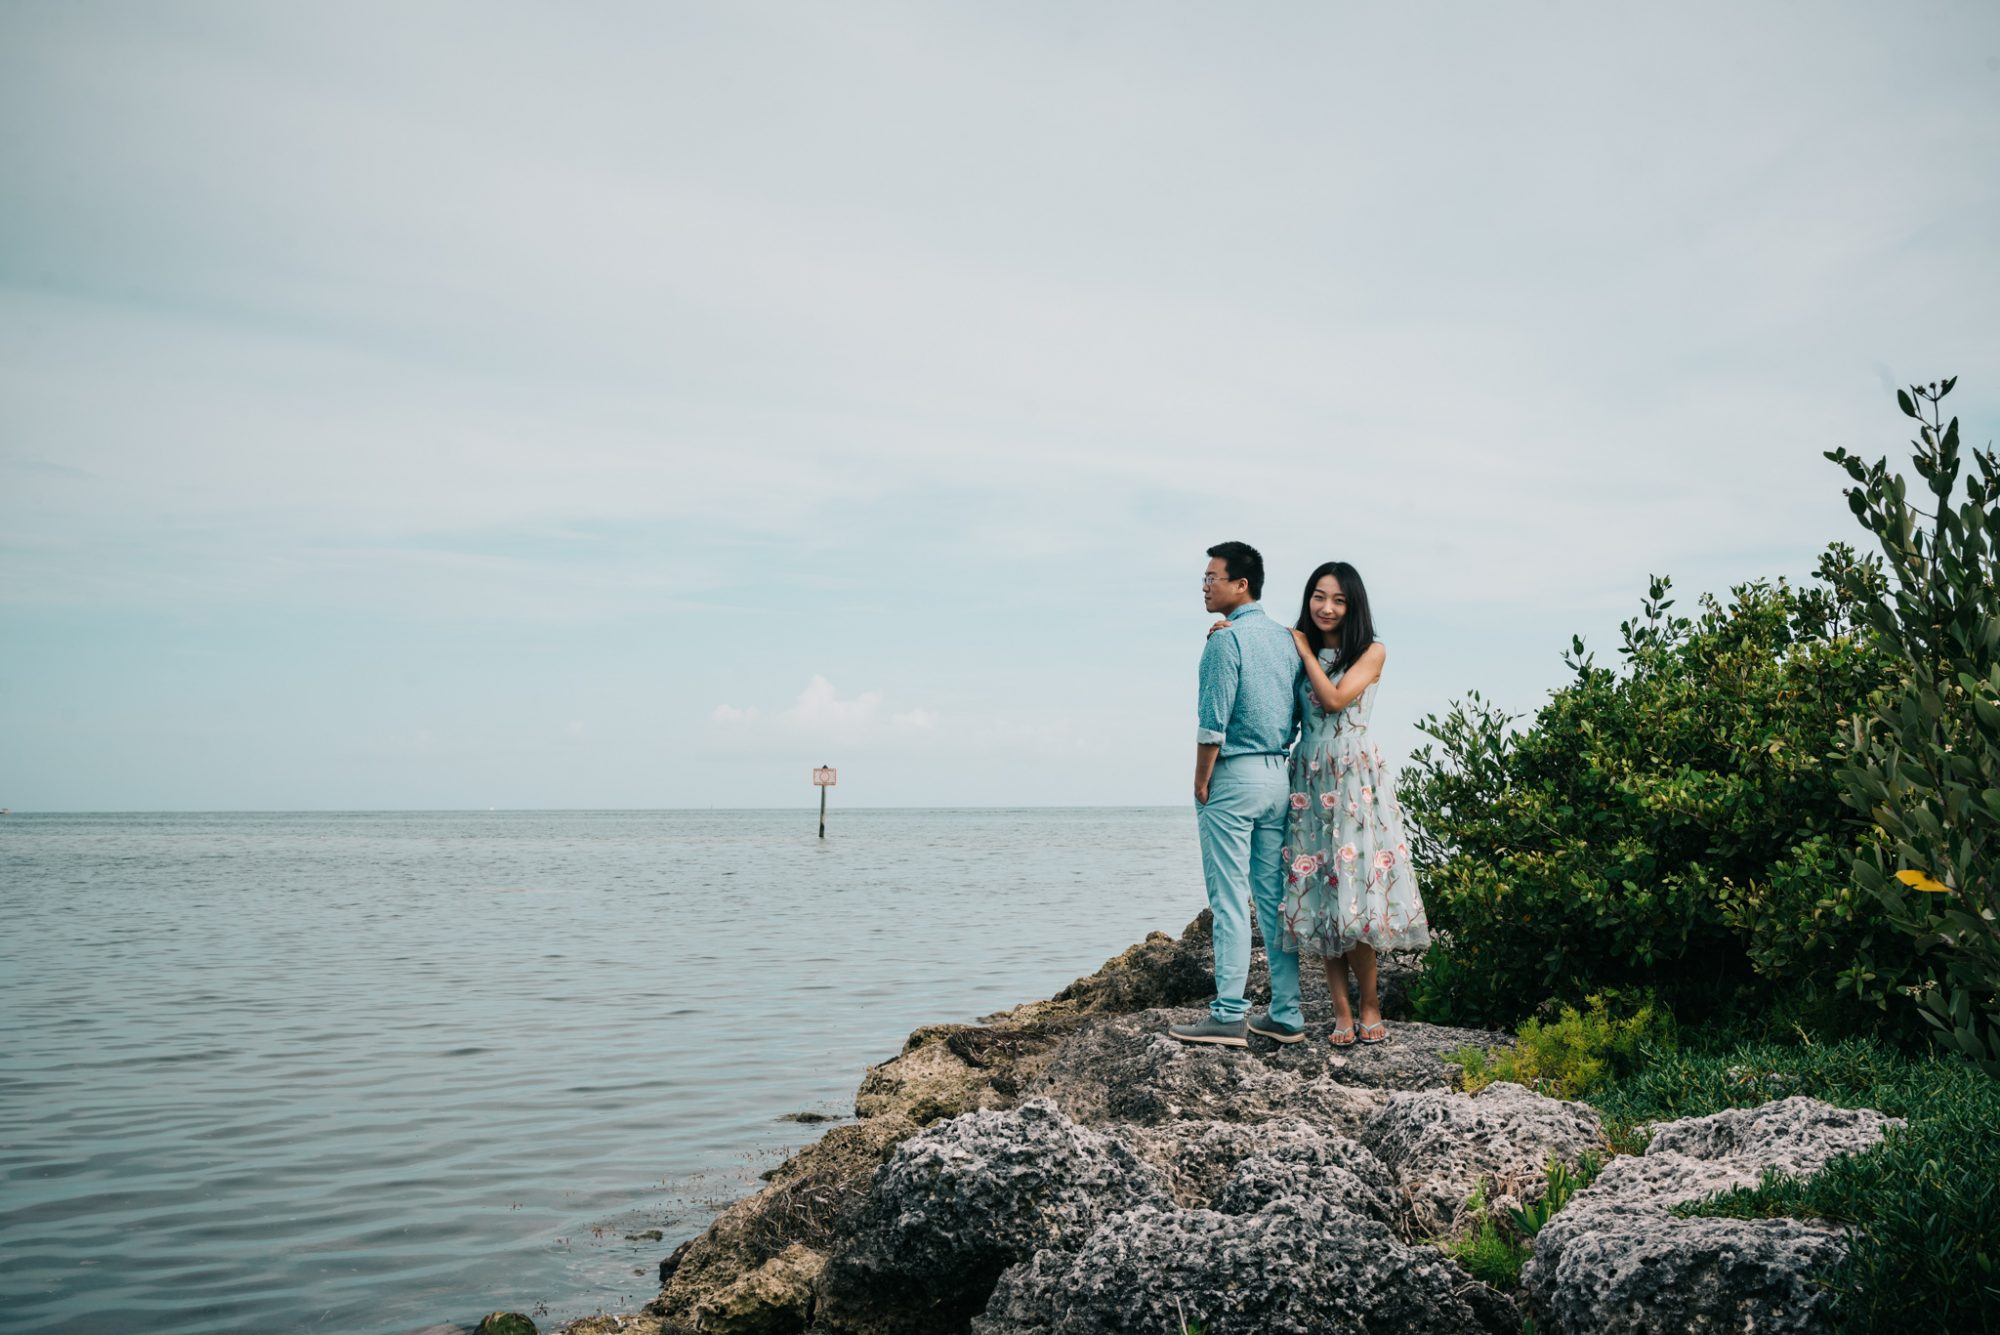 FBF1338 - Xiao & Ying | Key West, FL | Engagement Sunset Session